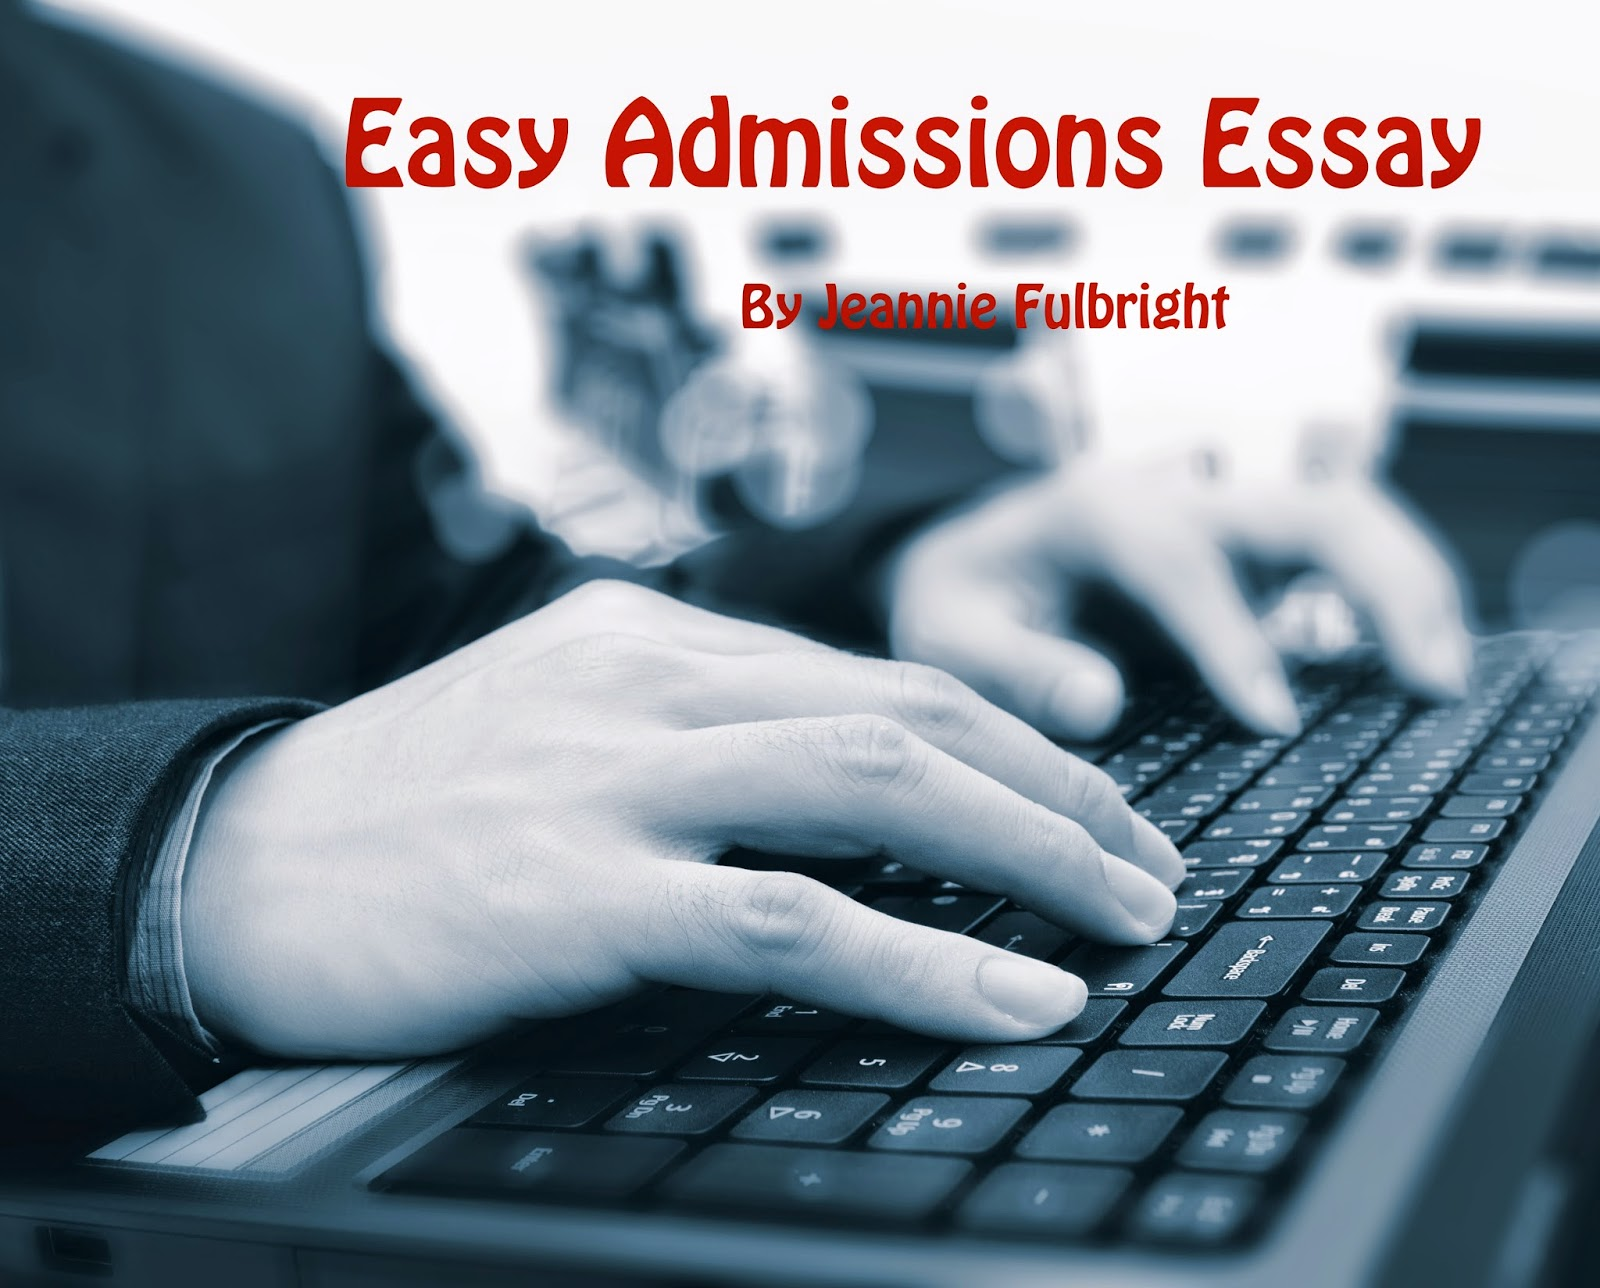 jeannie fulbright college crash course part 16 easy admissions no matter what anyone tells you the essay is not the most important piece of the college admissions puzzle it won t make or break your child s chances